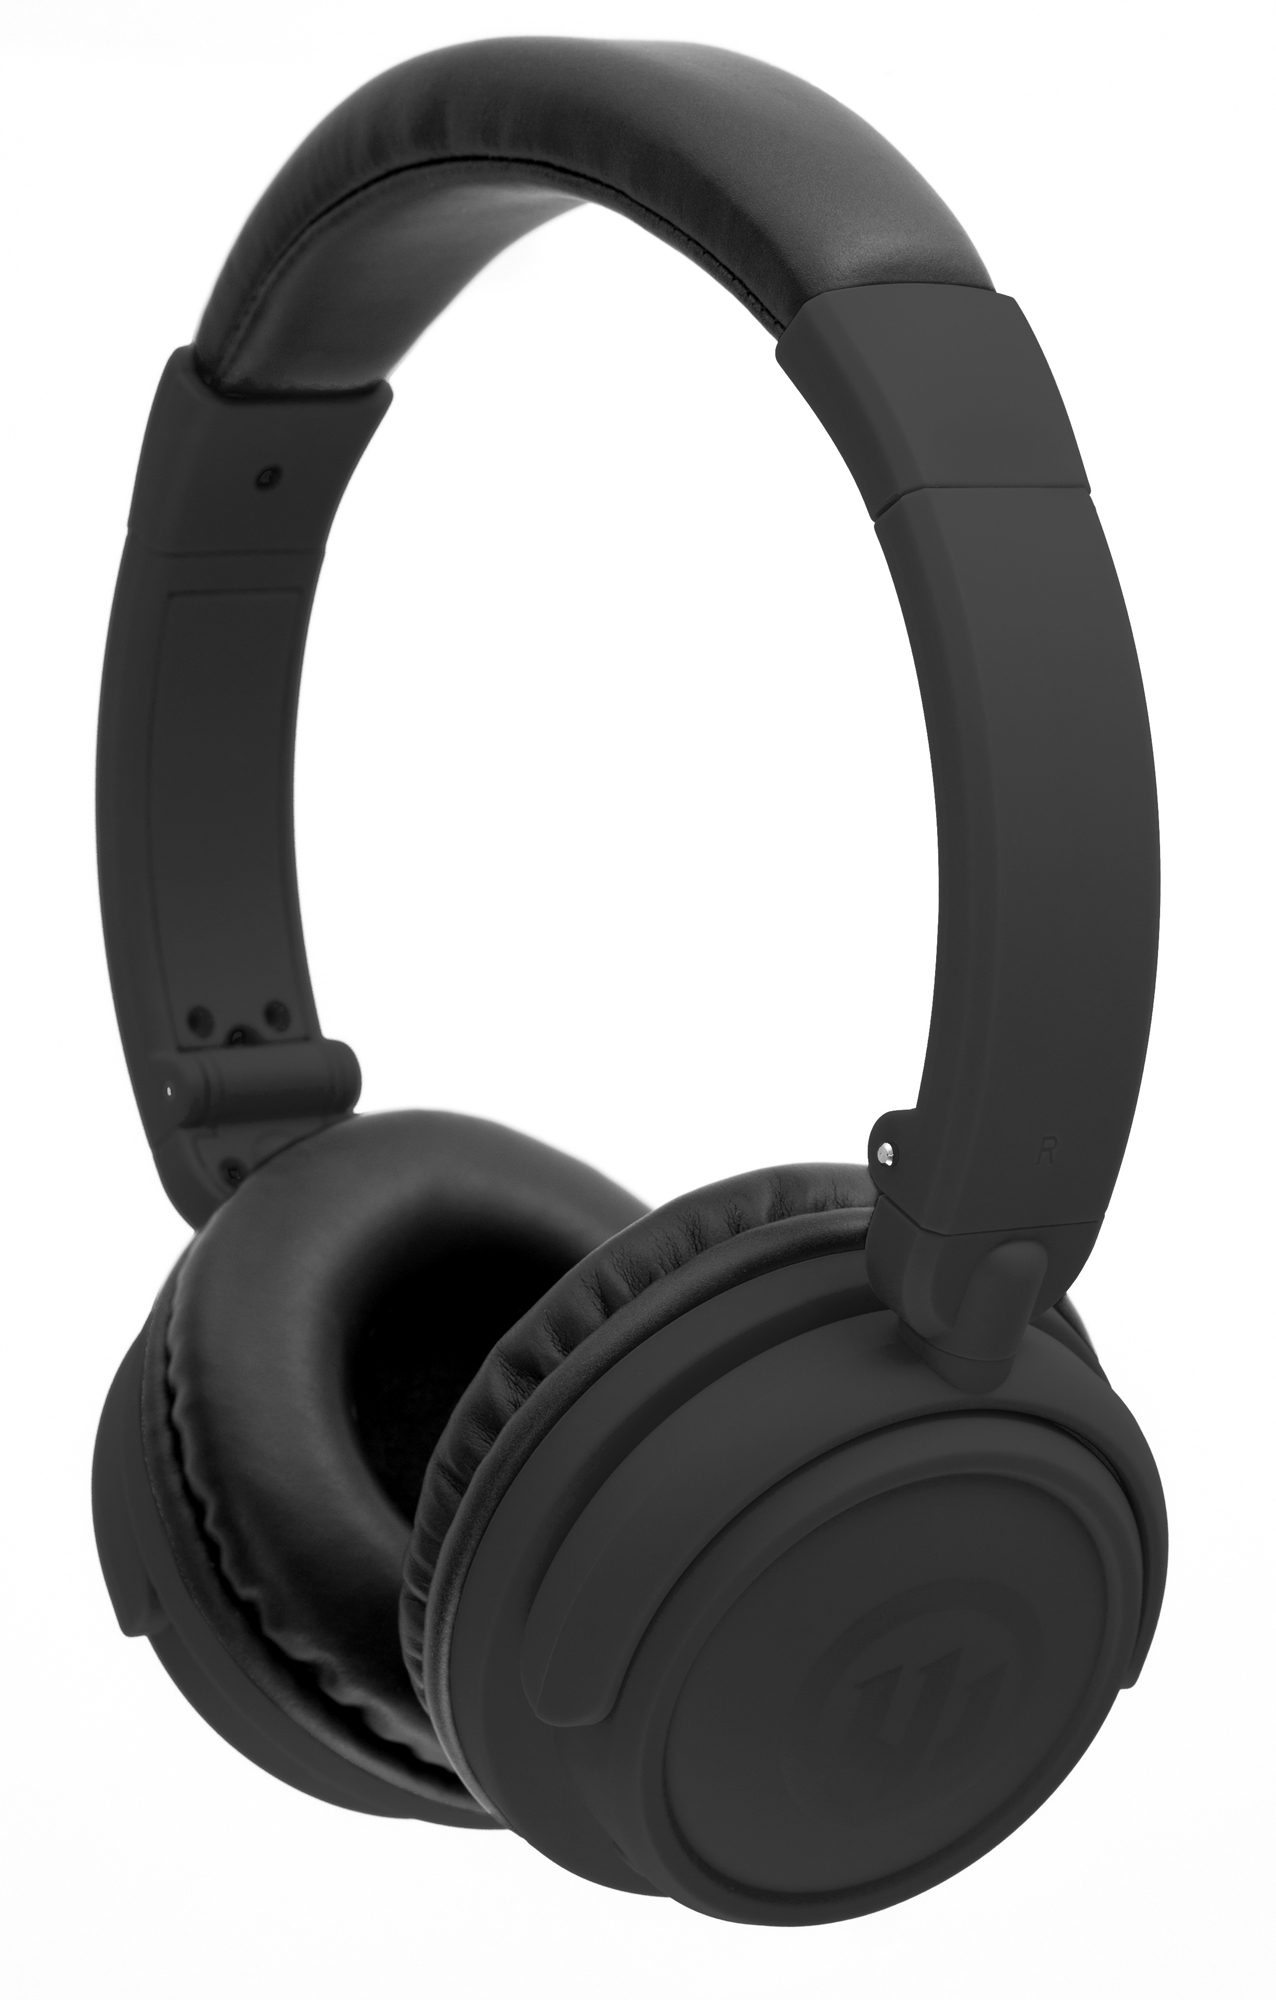 Wicked Audio Endo Wireless Bluetooth Collapsible Headphone, Black